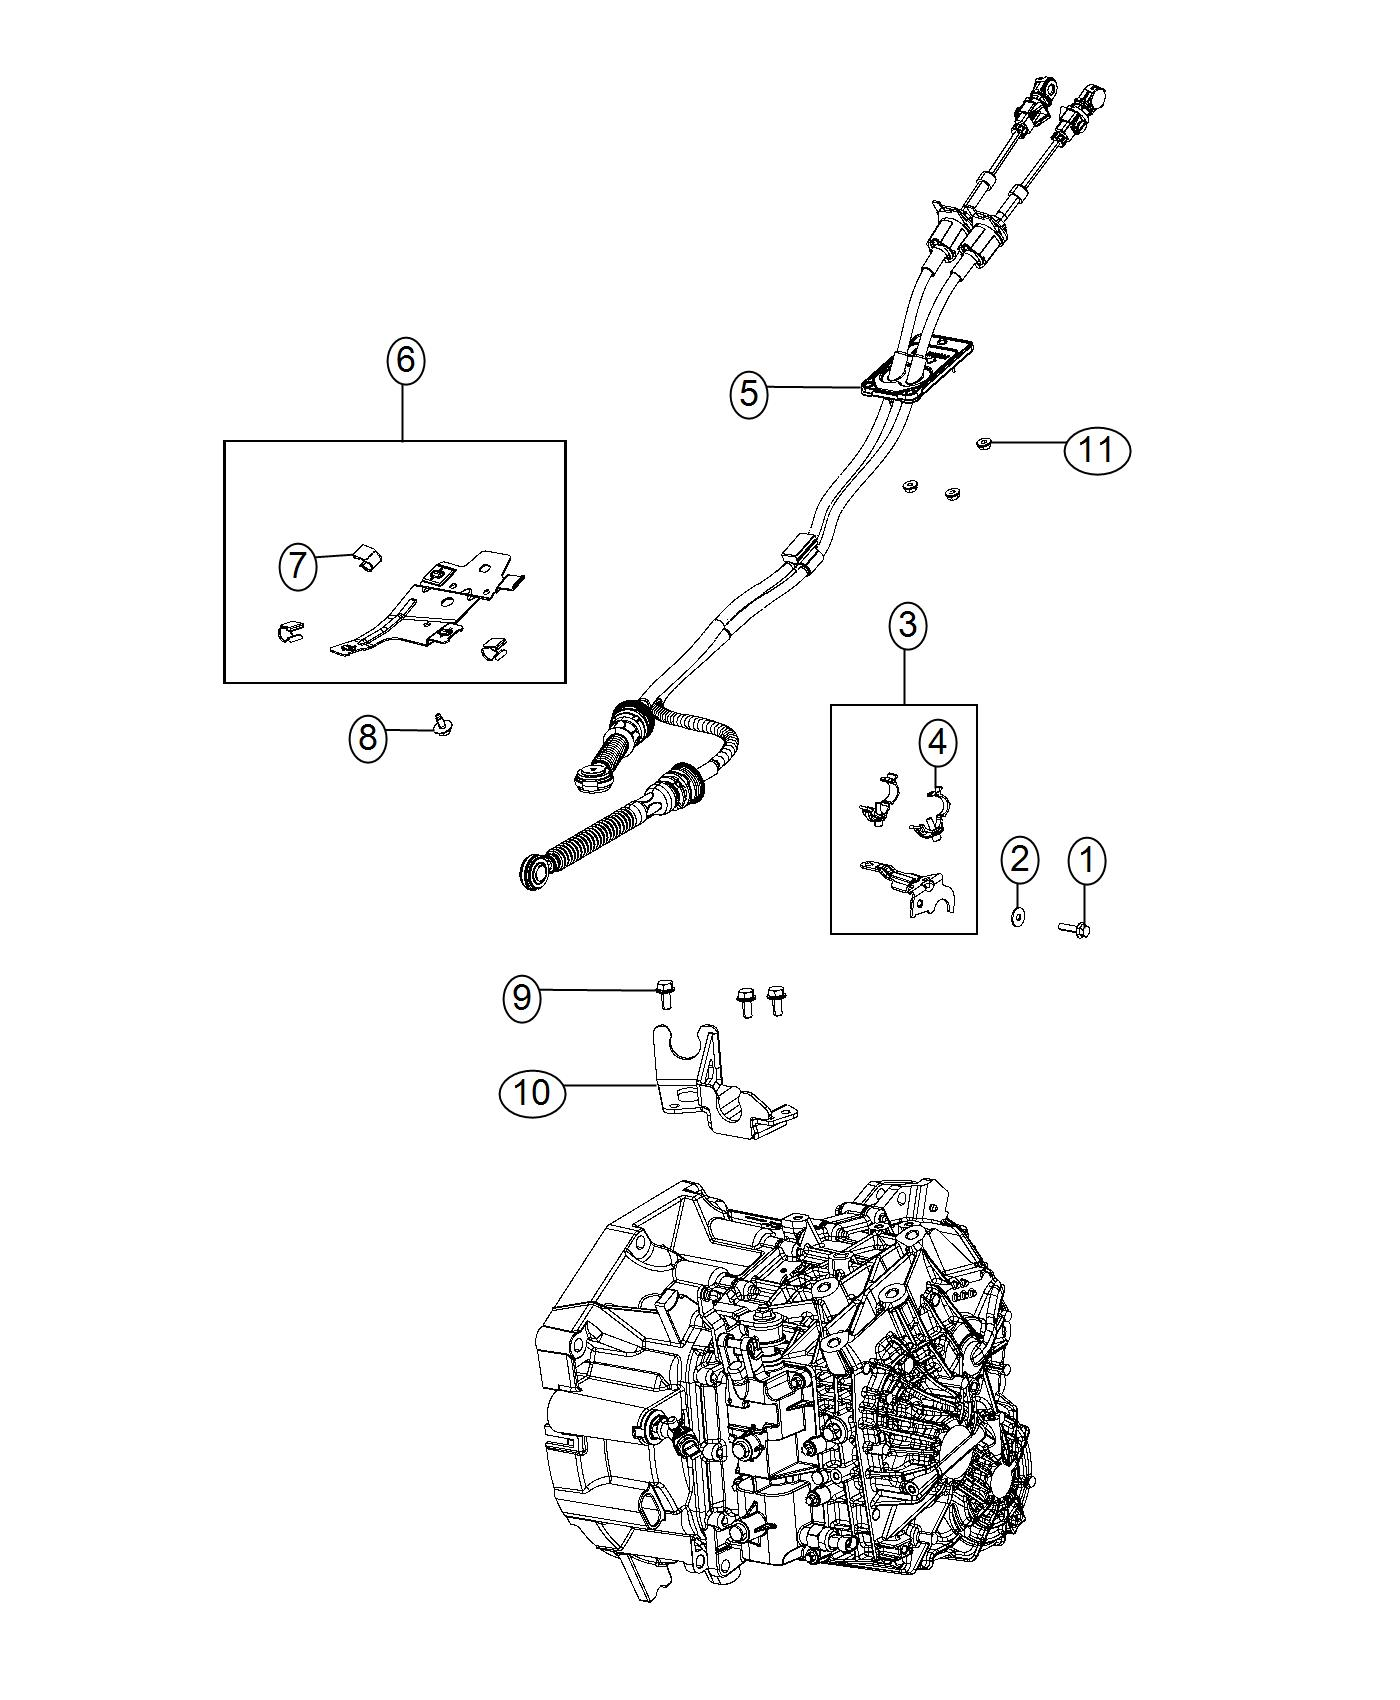 Jeep Renegade Bracket Shift Cable 2 8 Overall Top Gear Ratio 3 833 Final Drive